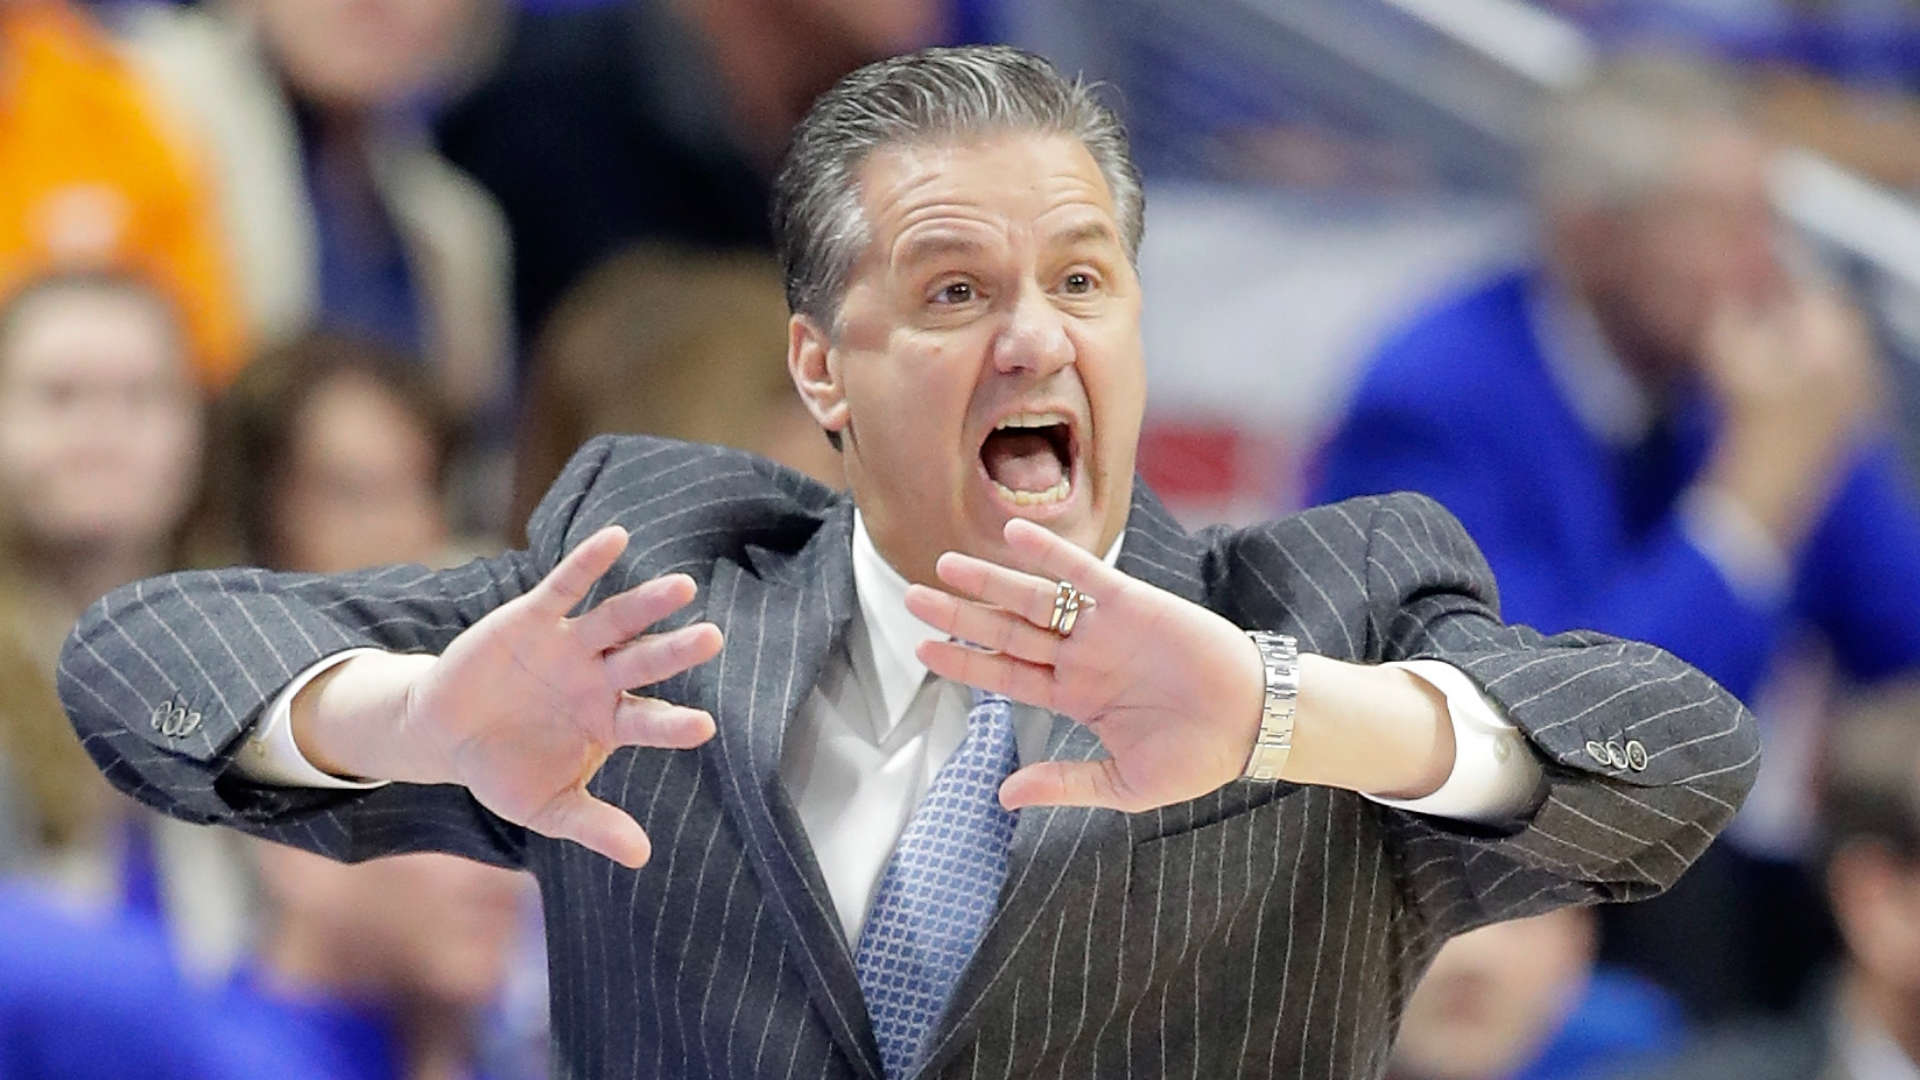 John Calipari: John Calipari Defends Fired N.C. State Mark Gottfried In